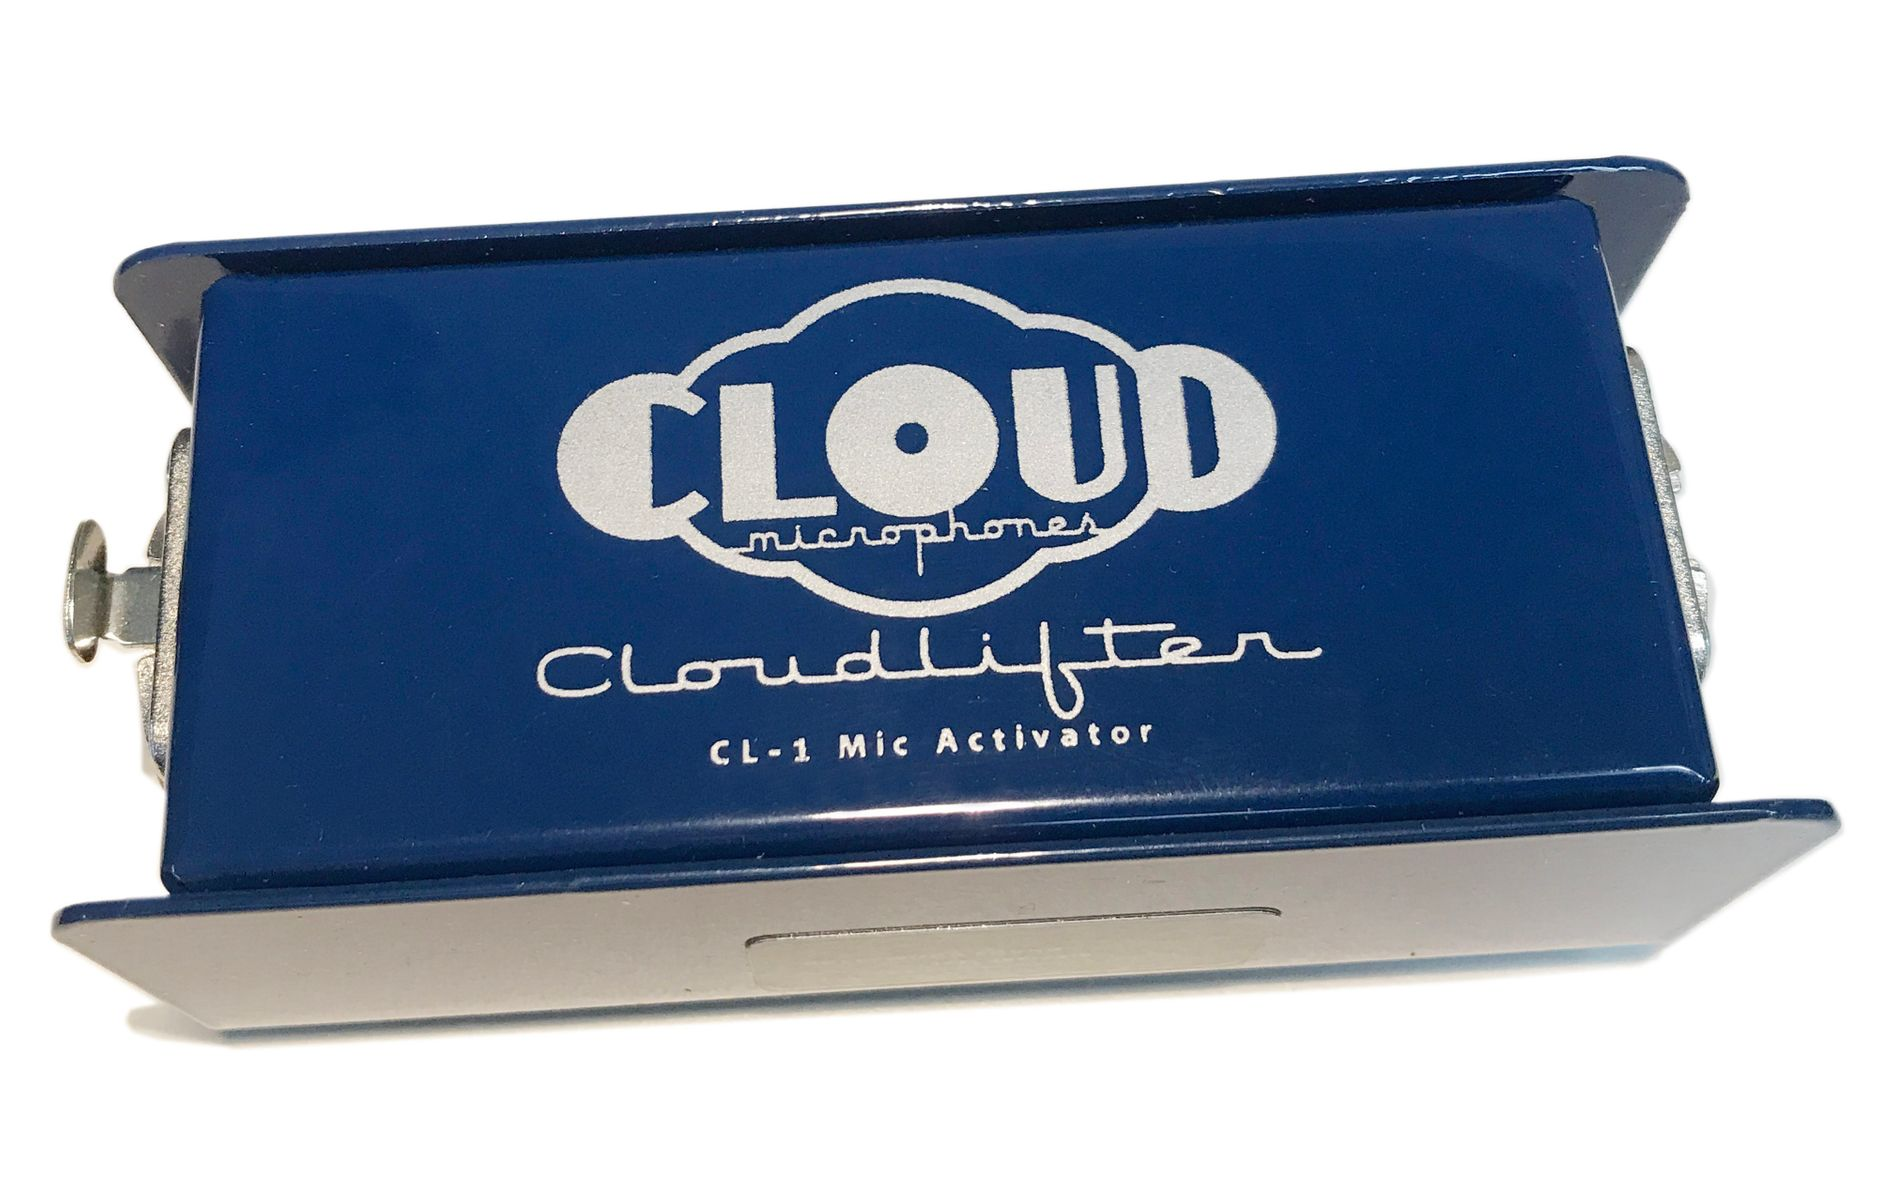 CLOUD Microphones Cloudlifter CL-1 Mic Activator is available at Hollywood Sound Systems.